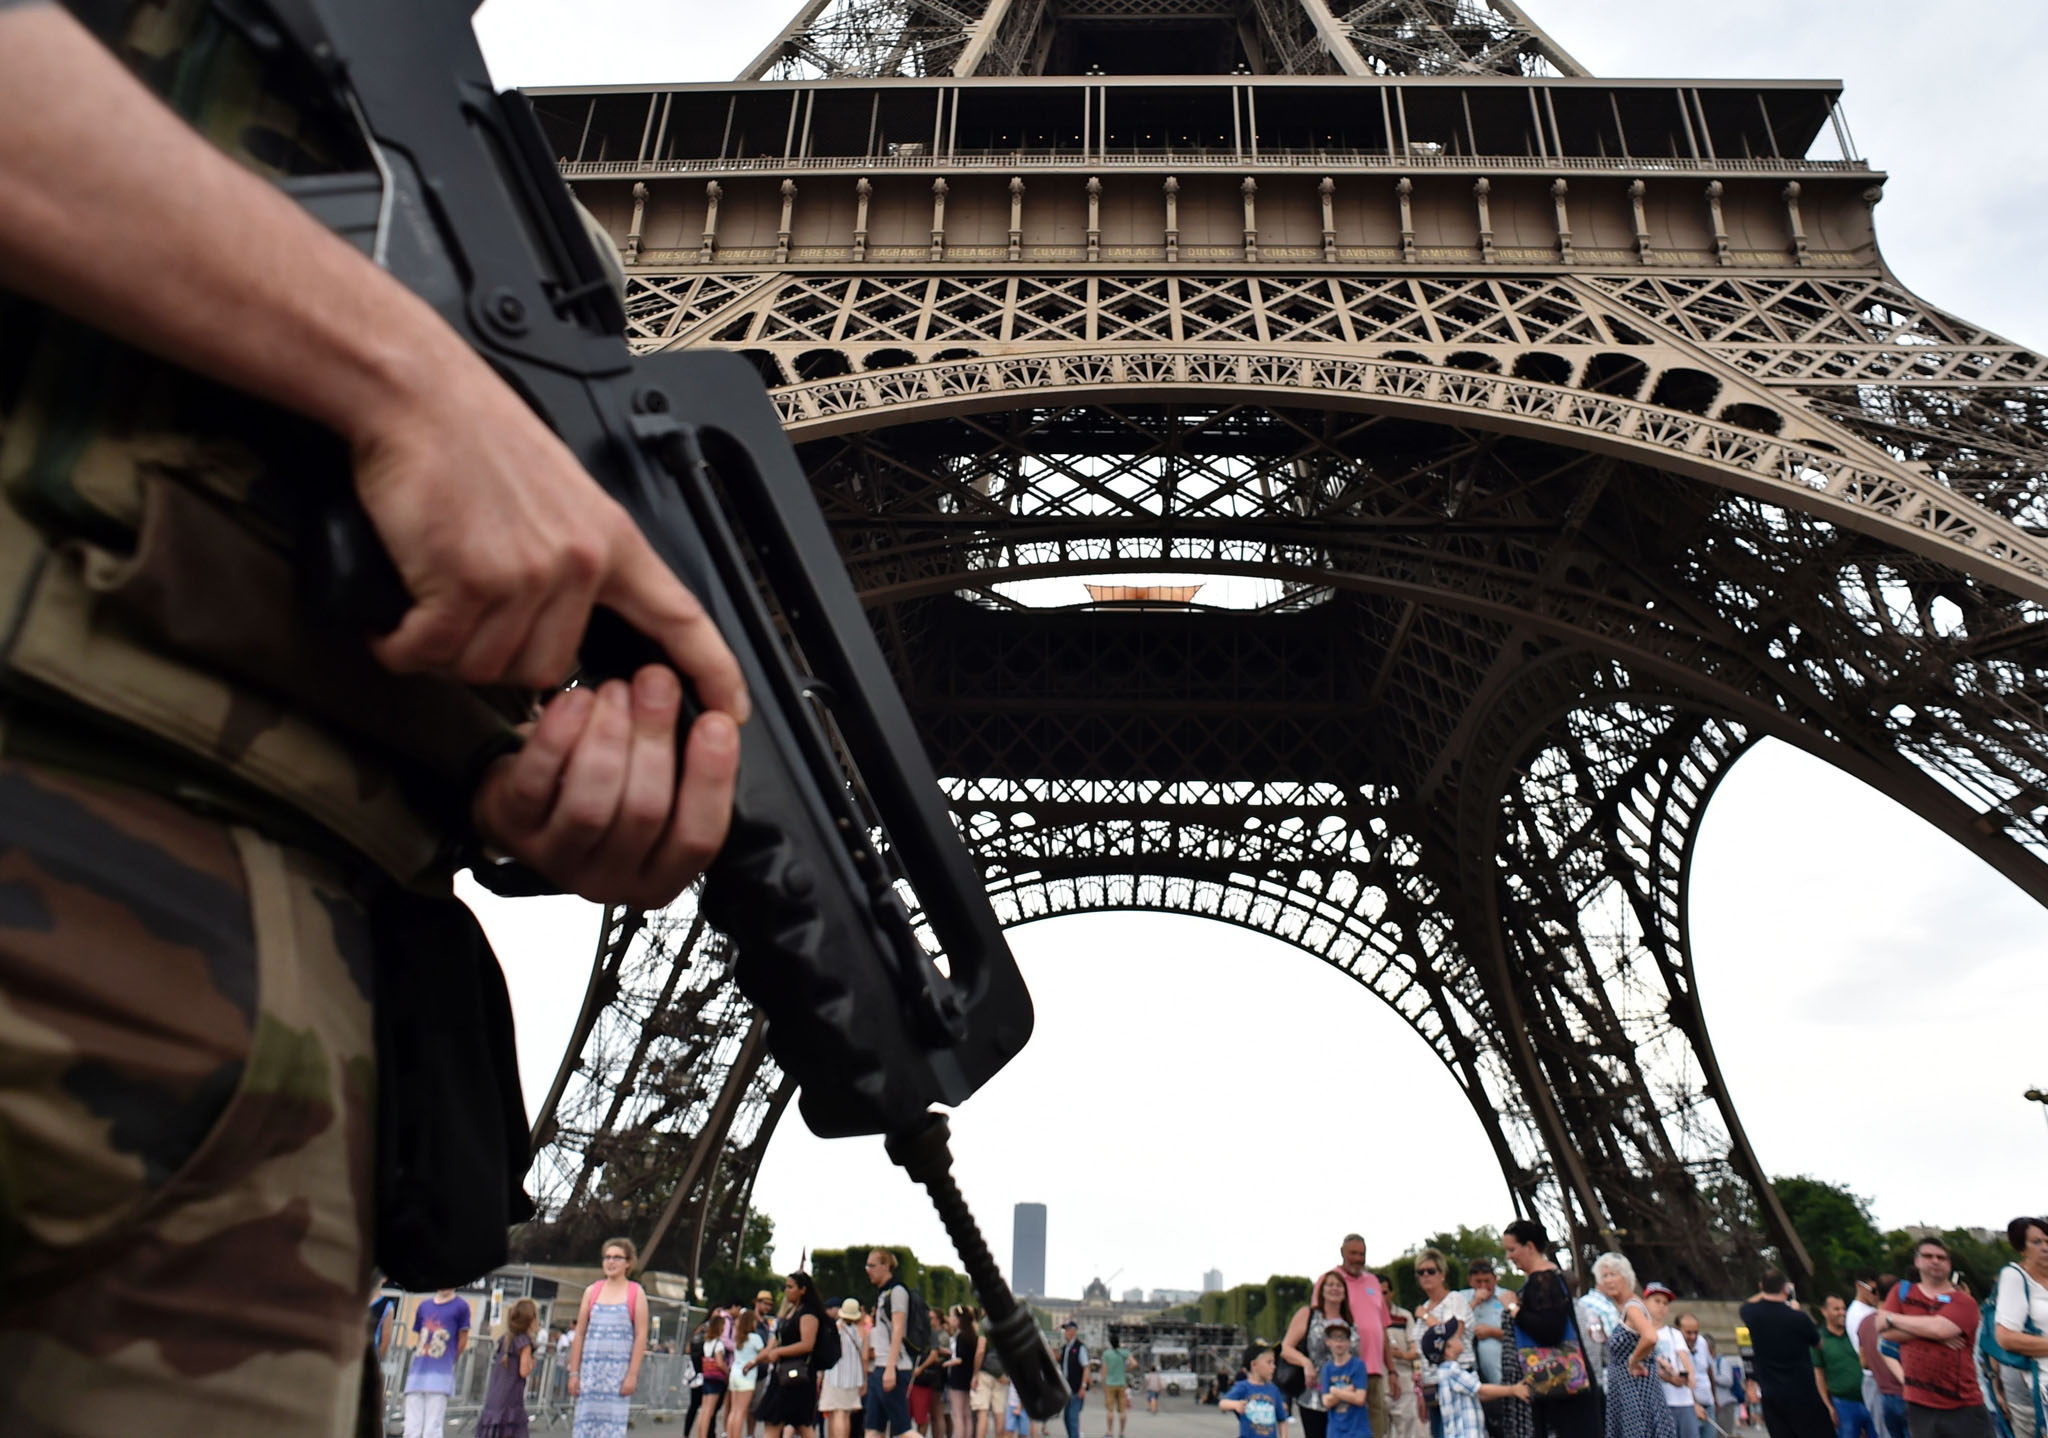 An armed French soldier of the 35th RAP (35e regiment d'artillerie parachutiste), part of Operation Sentinelle, patrols under at the Eiffel tower in Paris